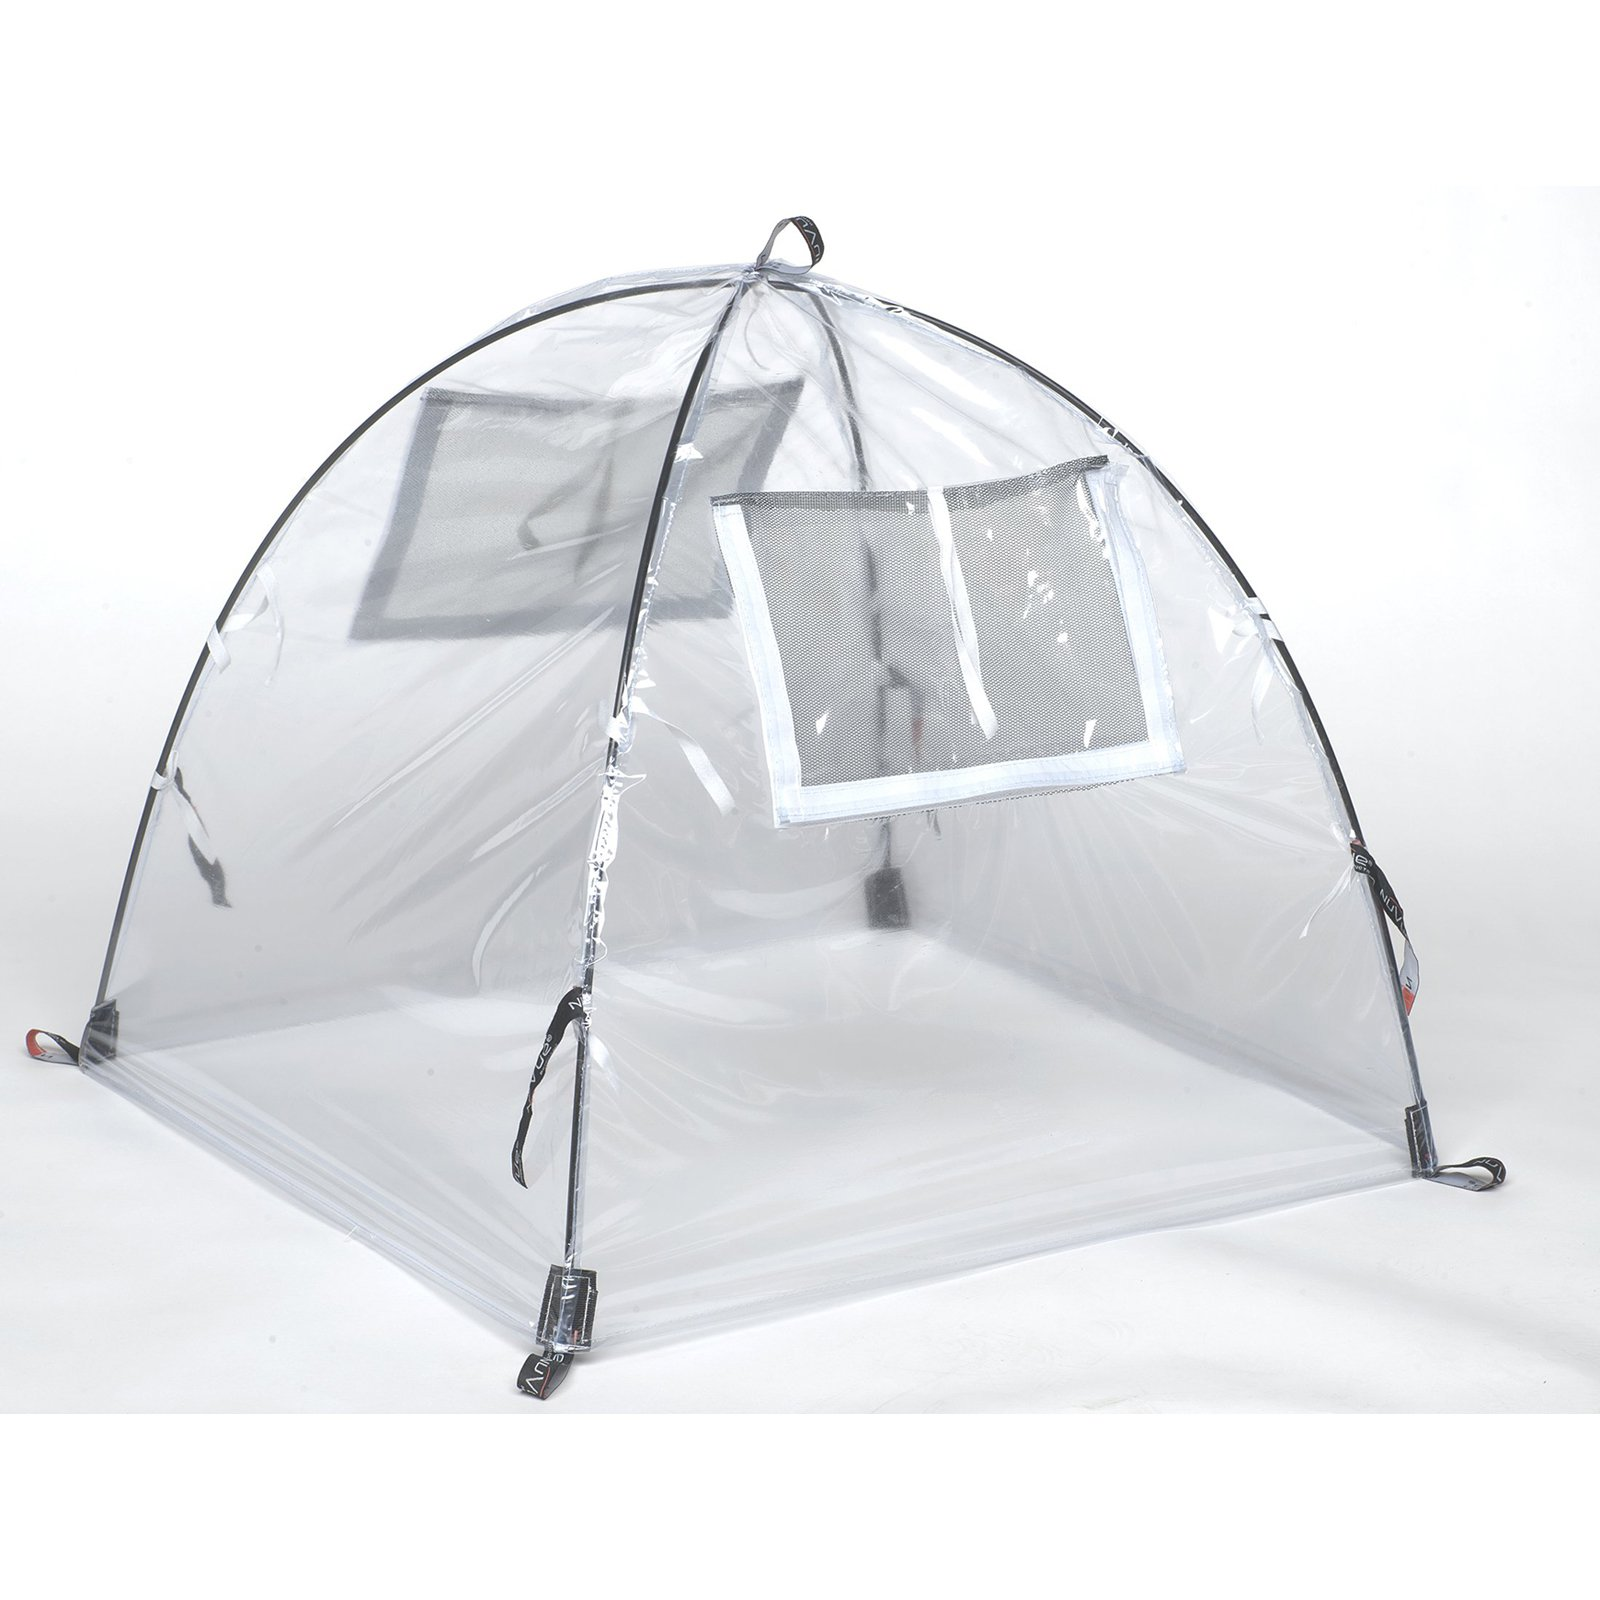 """Nuvue Products 22"""" x 22"""" Transparent Pop Up Greenhouse by Nuvue Products, Inc"""